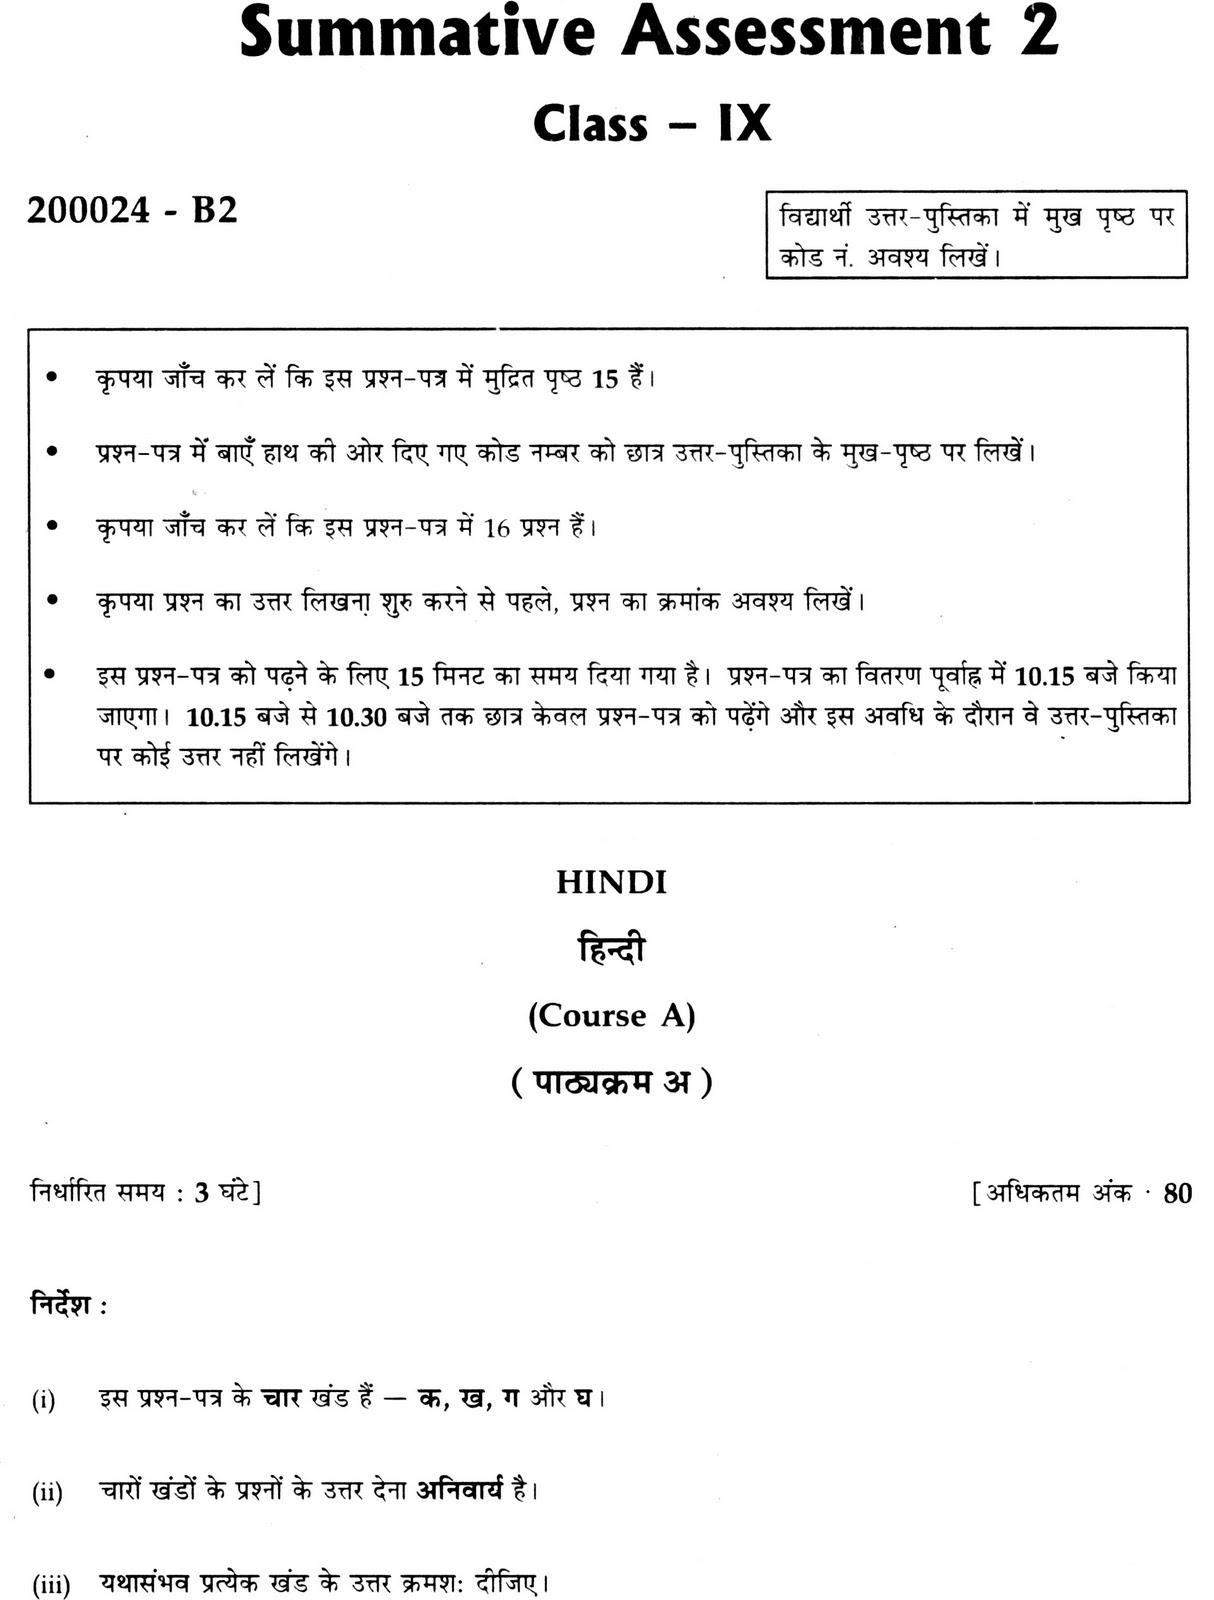 oswal sample papers class ix free download